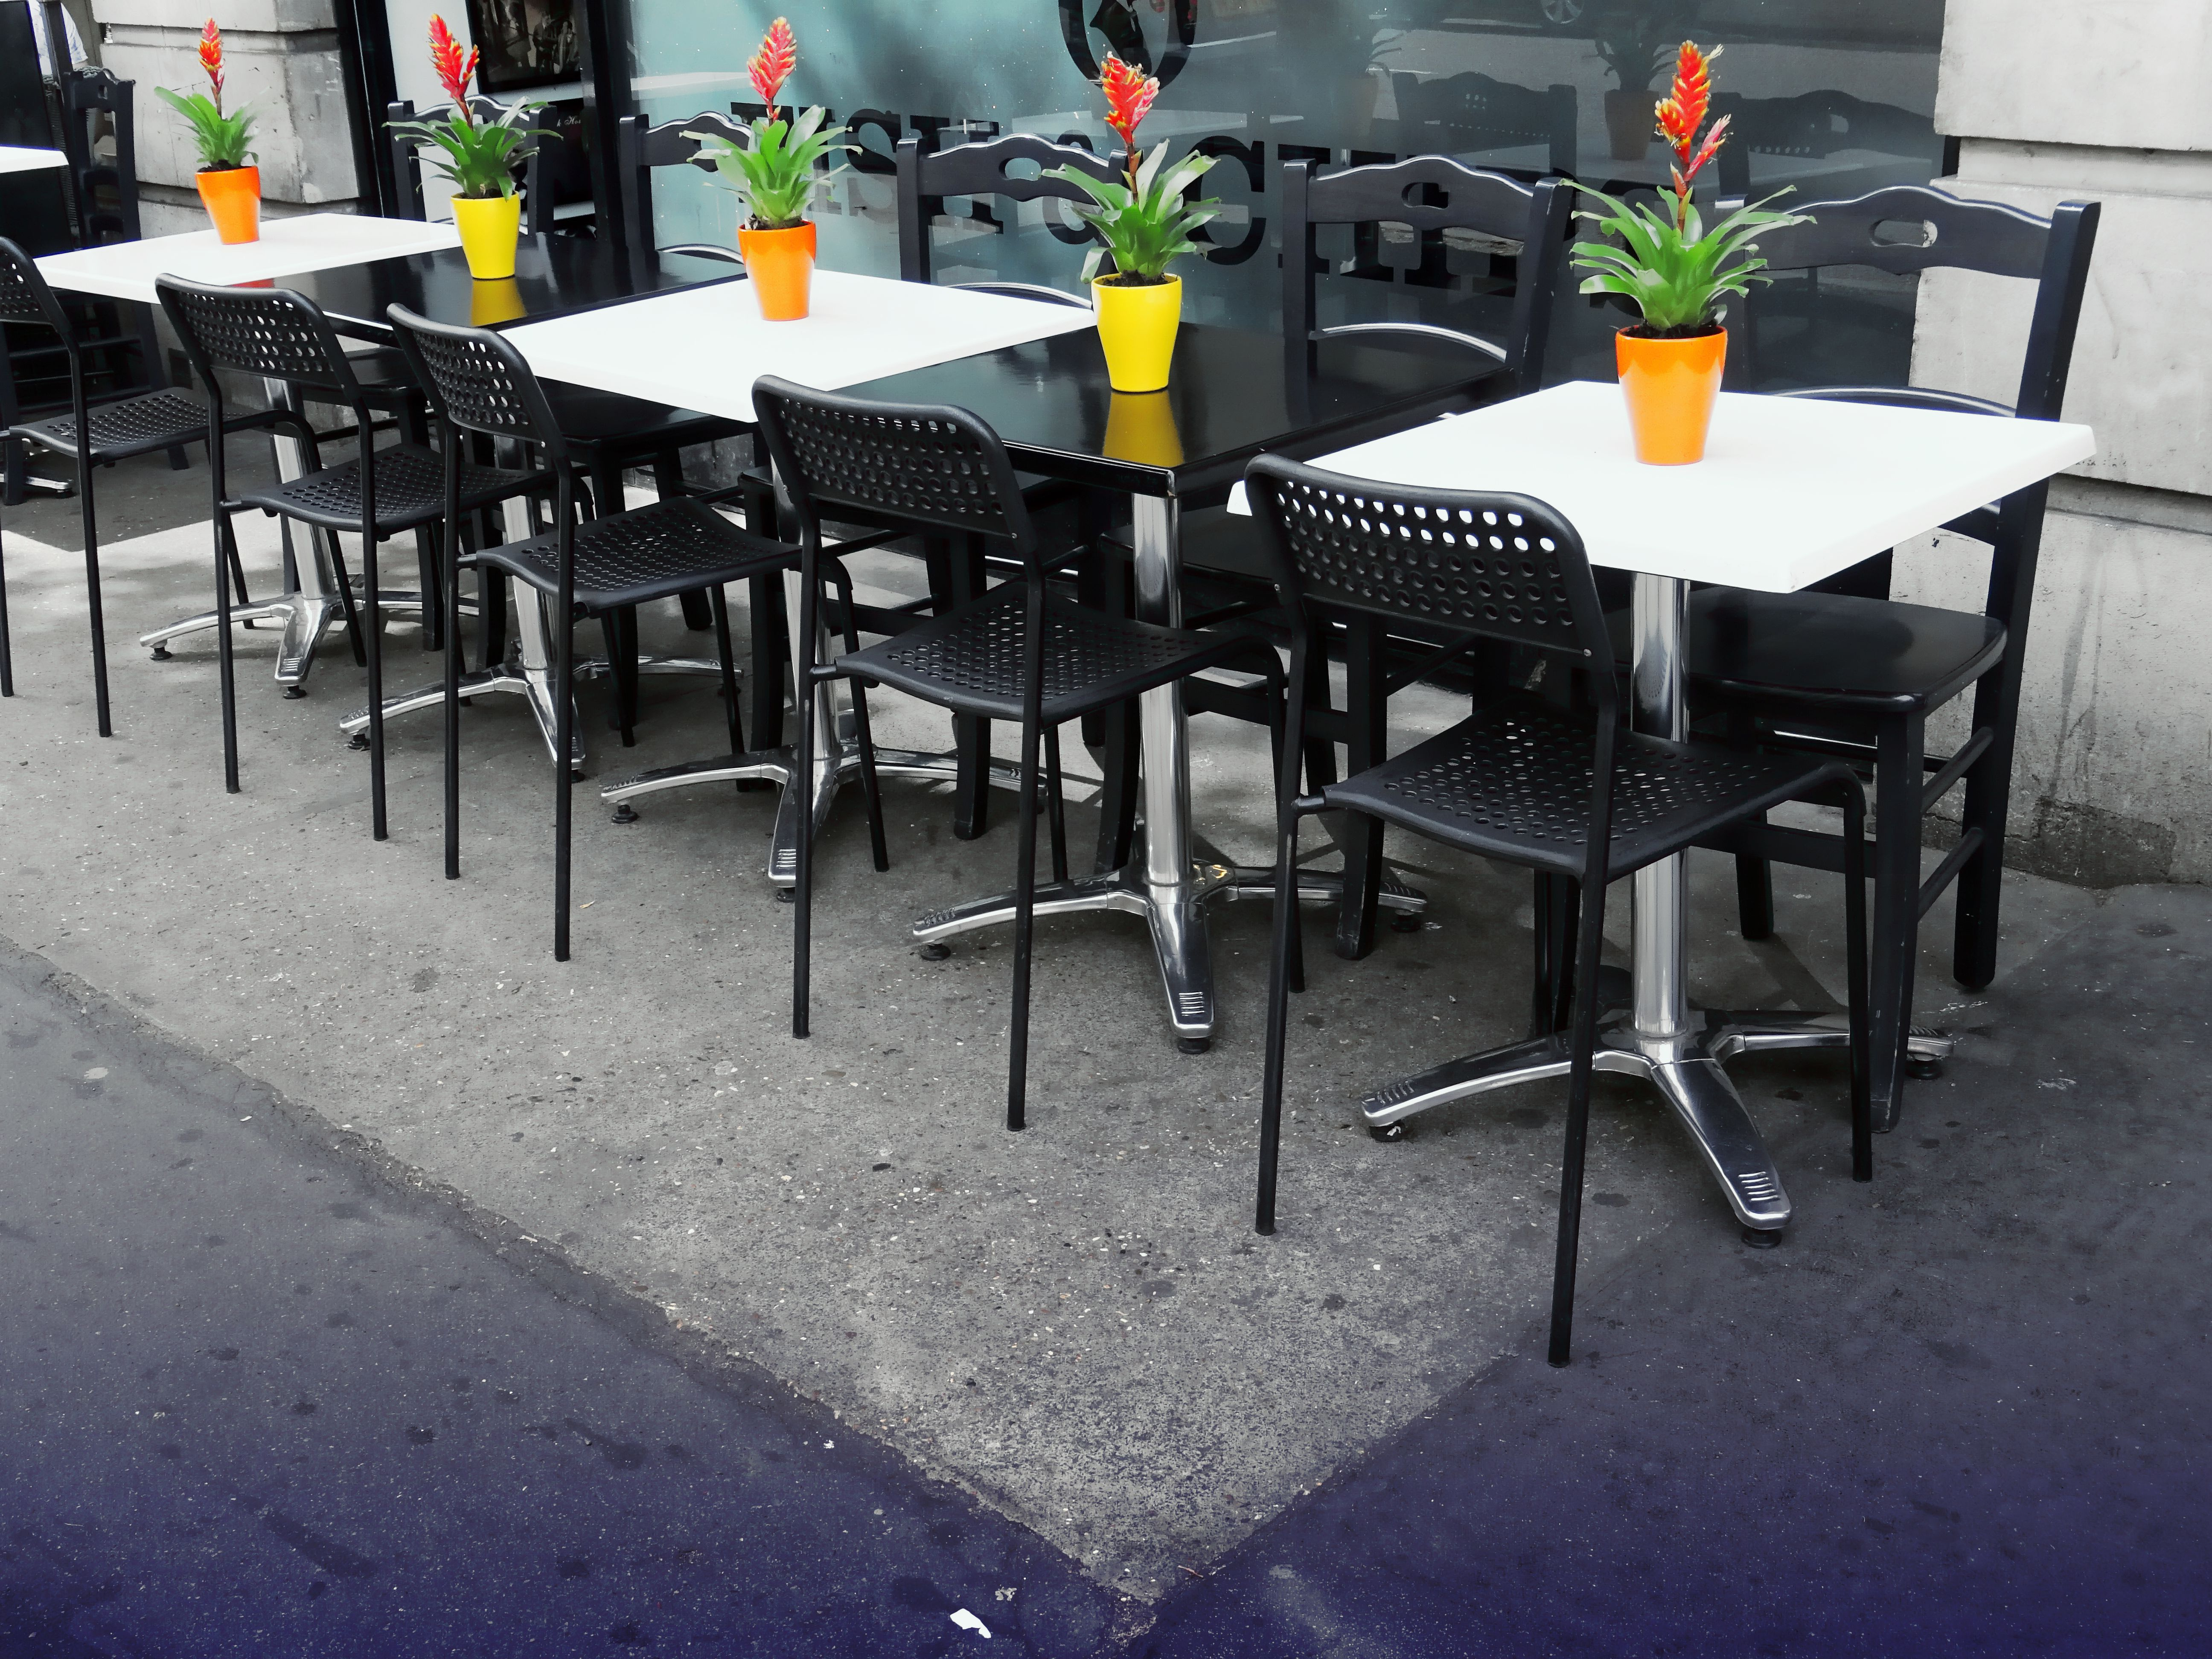 Outside Dining Is Upon Us Again. The Chance To Enjoy Our Meal Outdoors Is A  Deciding Factor For Many People, Including Me, When Choosing A Restaurant.